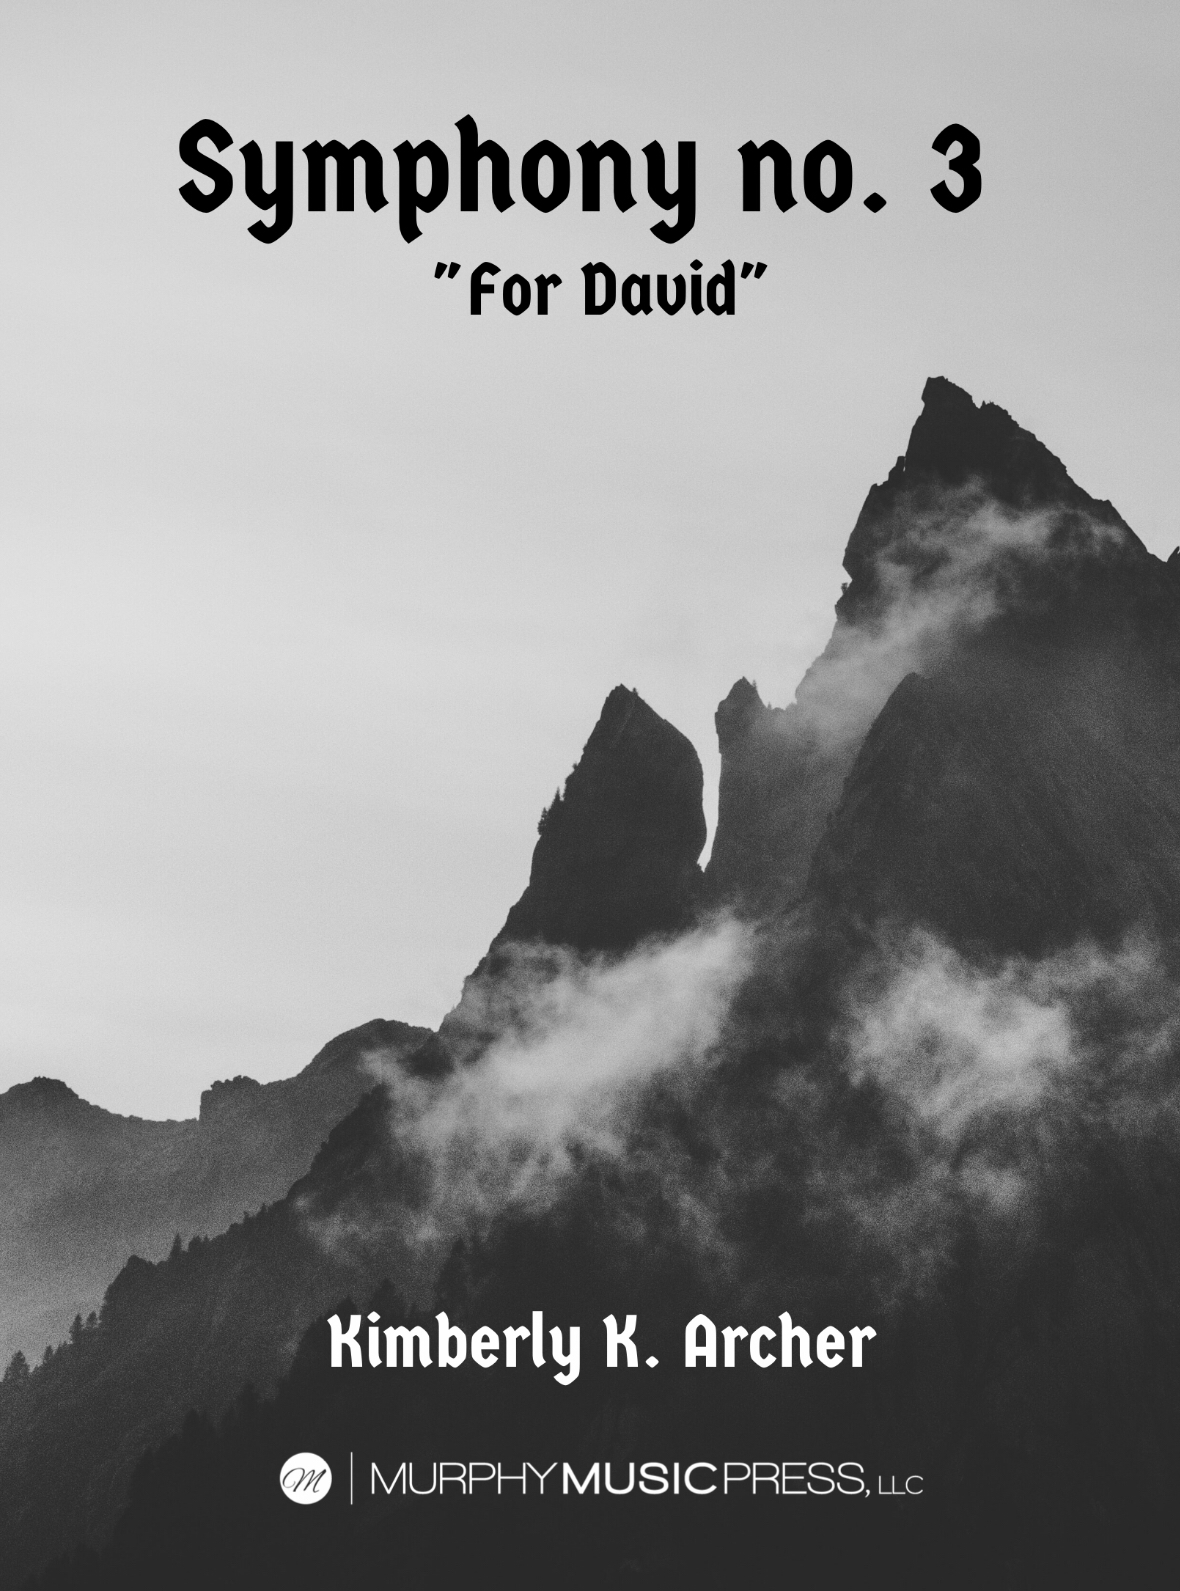 Symphony No. 3, For David by Kimberly Archer